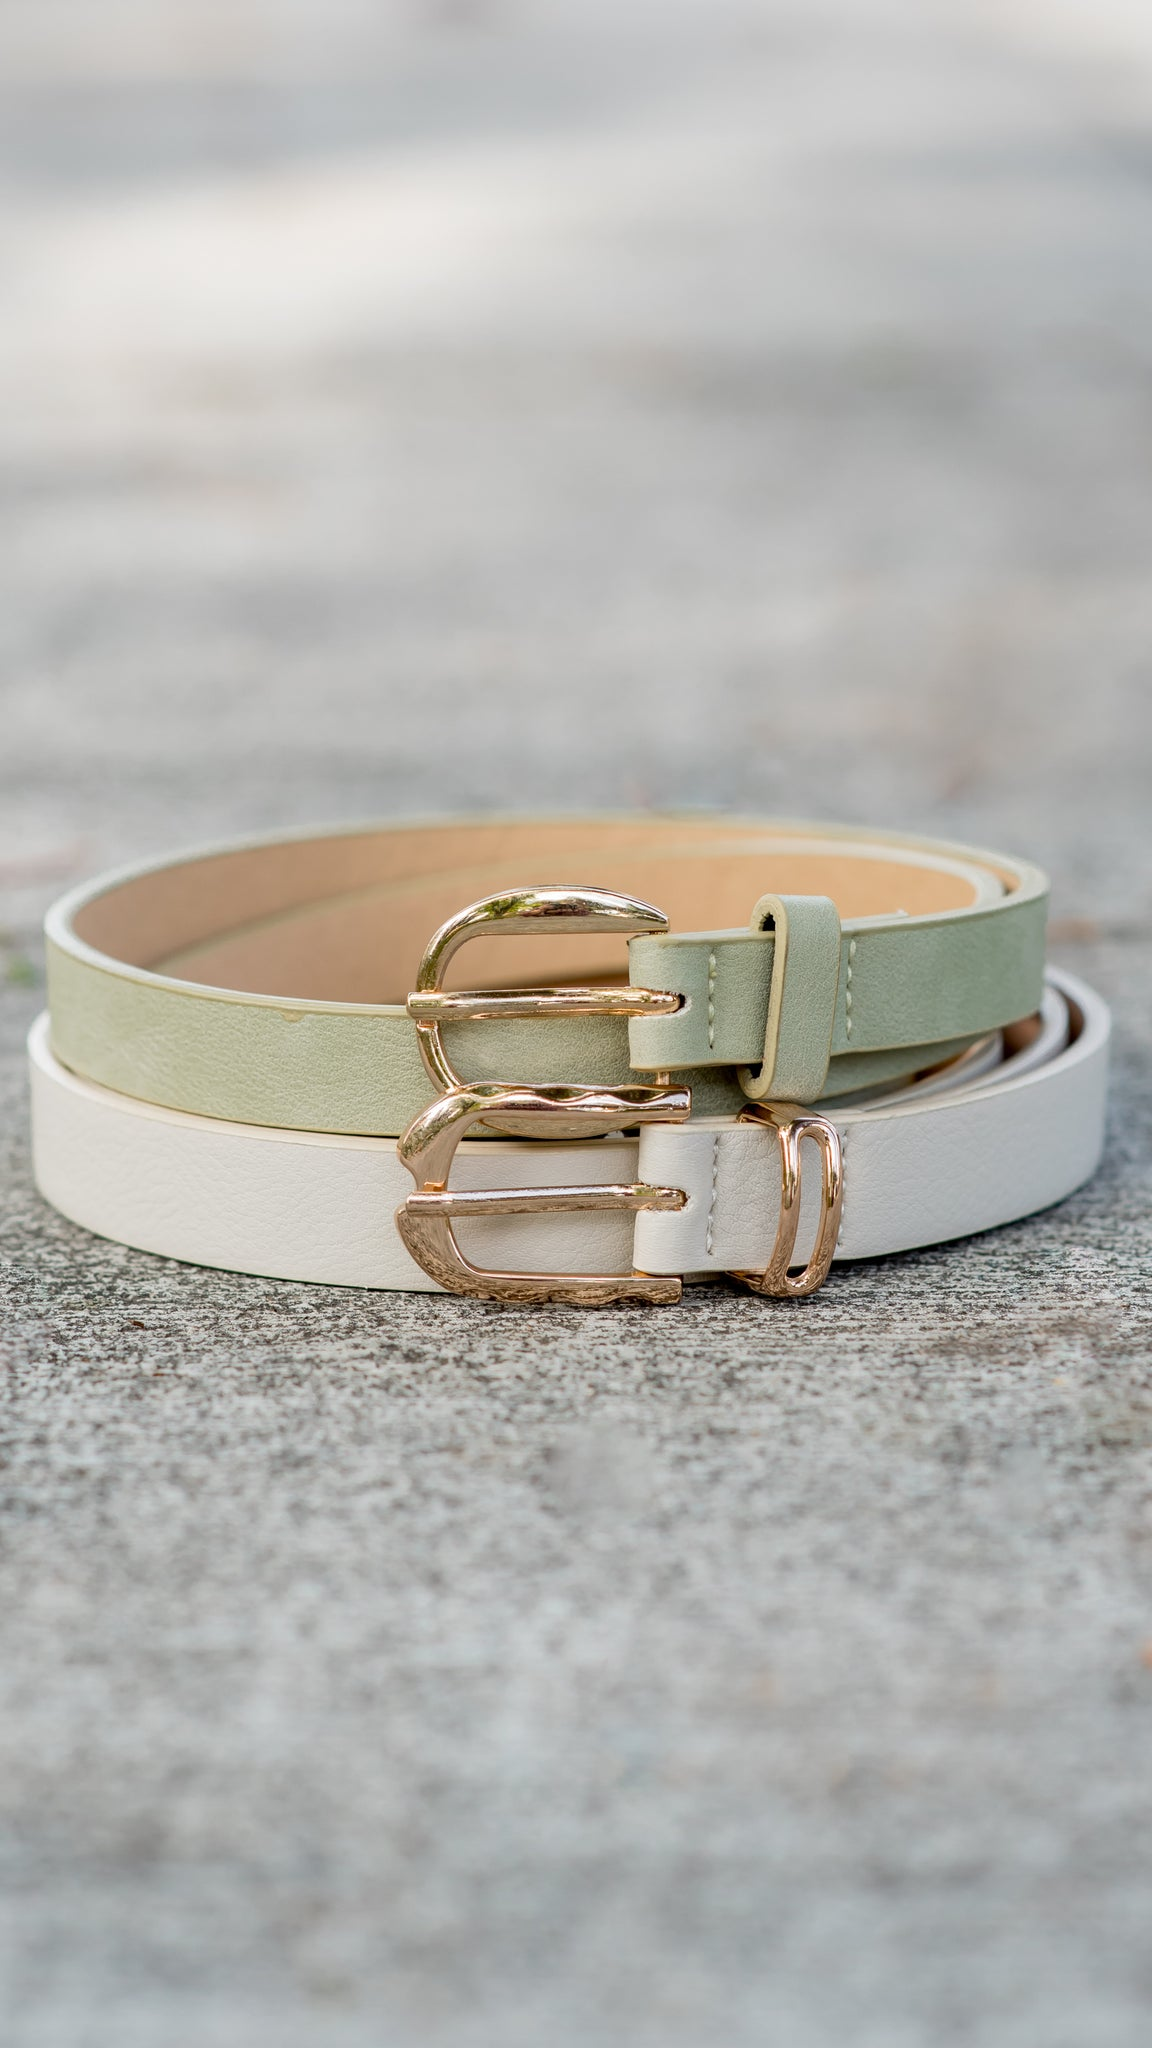 Spring into it Essential Belt- 2 Colors!